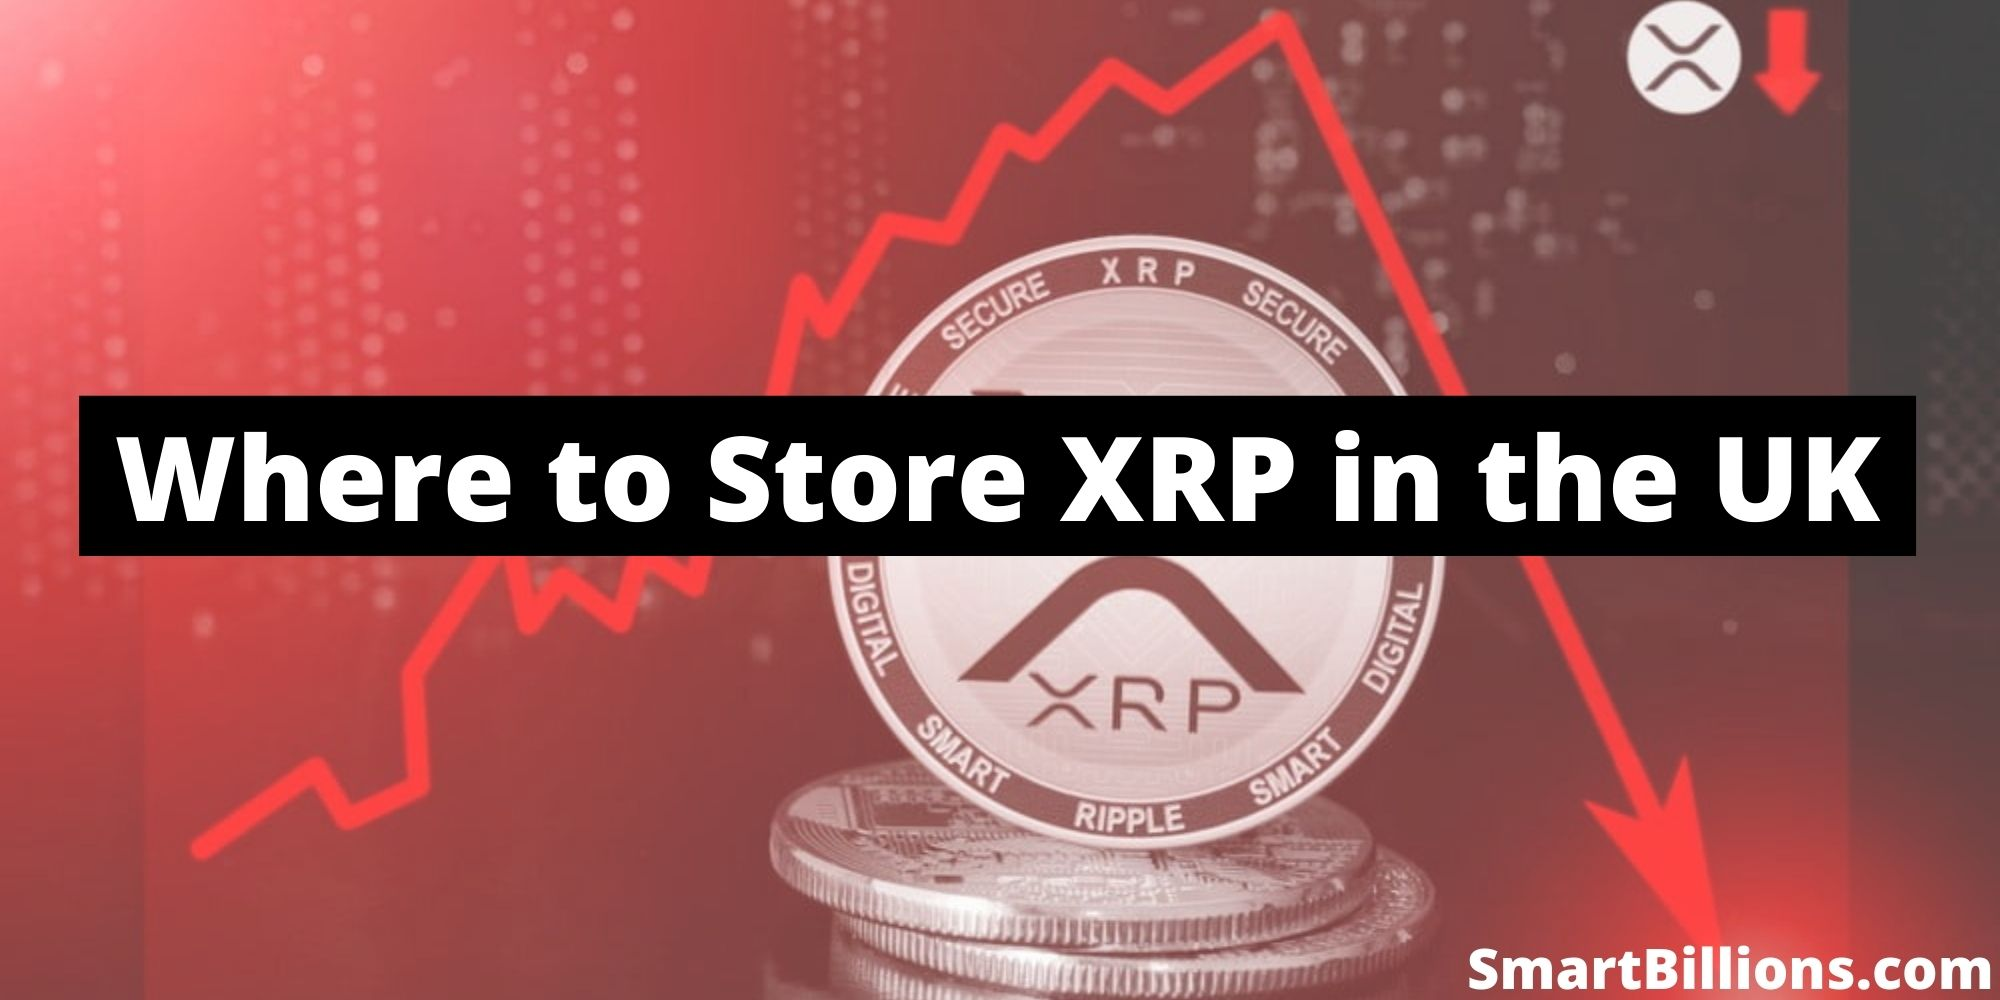 where to store xrp in the UK